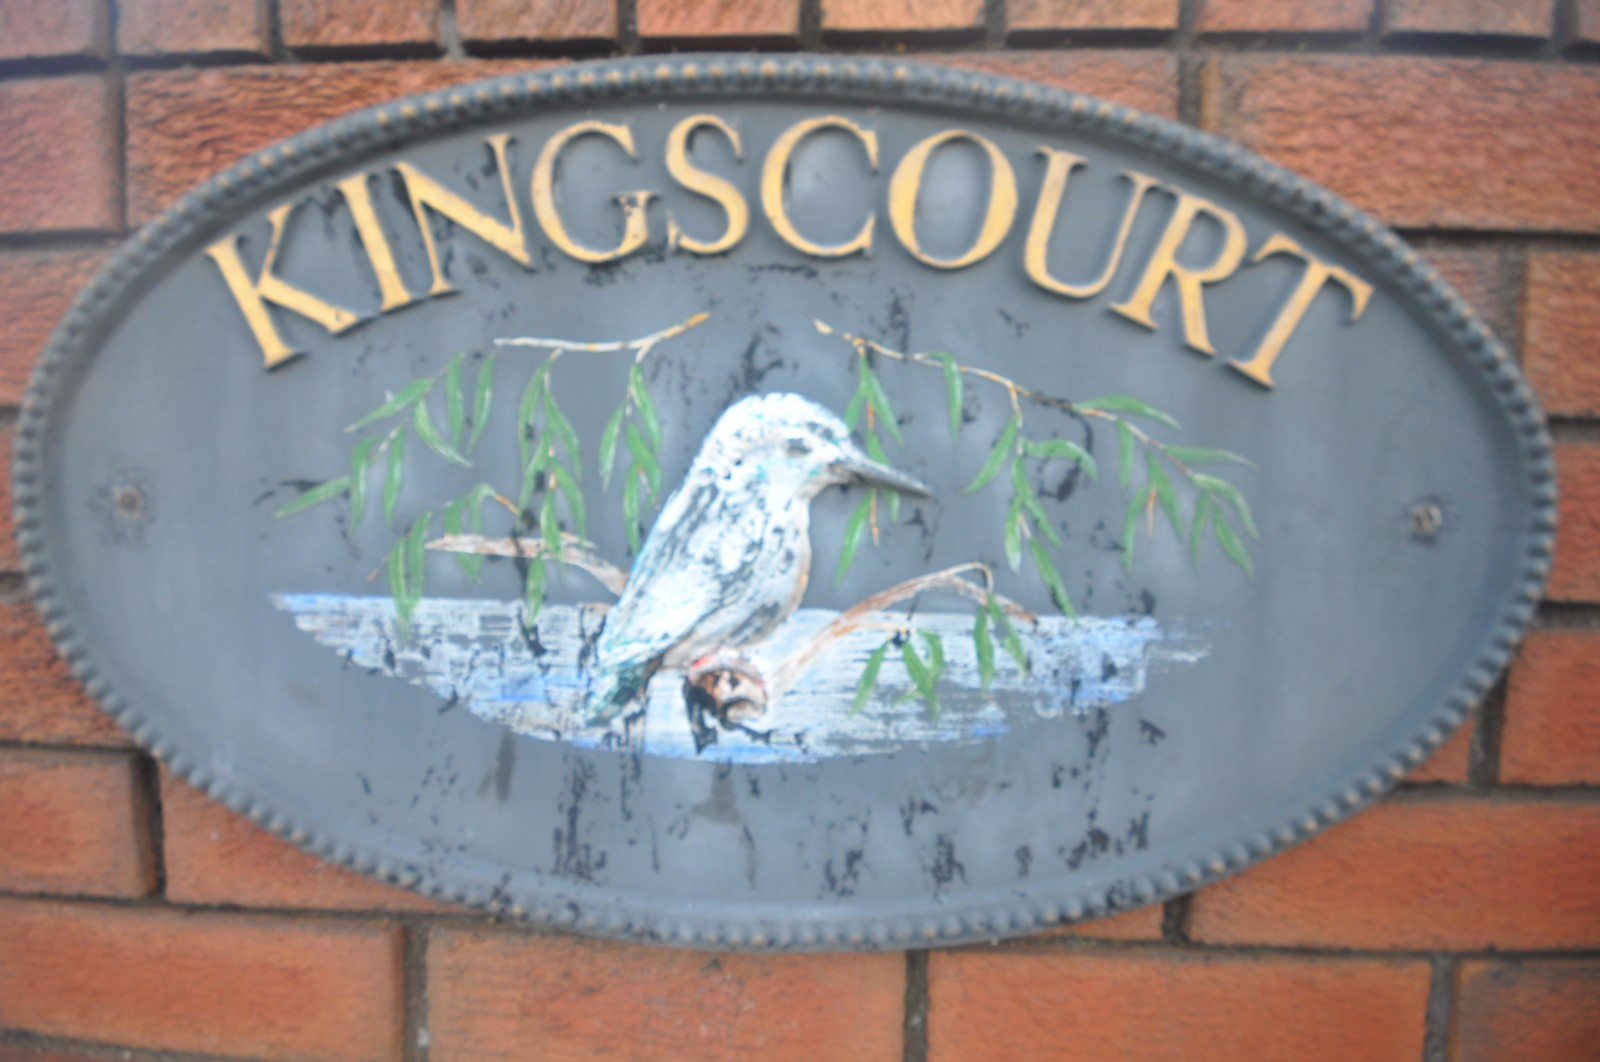 10 Kings Court, Upper Lisburn Road, Belfast, BT10 0AF